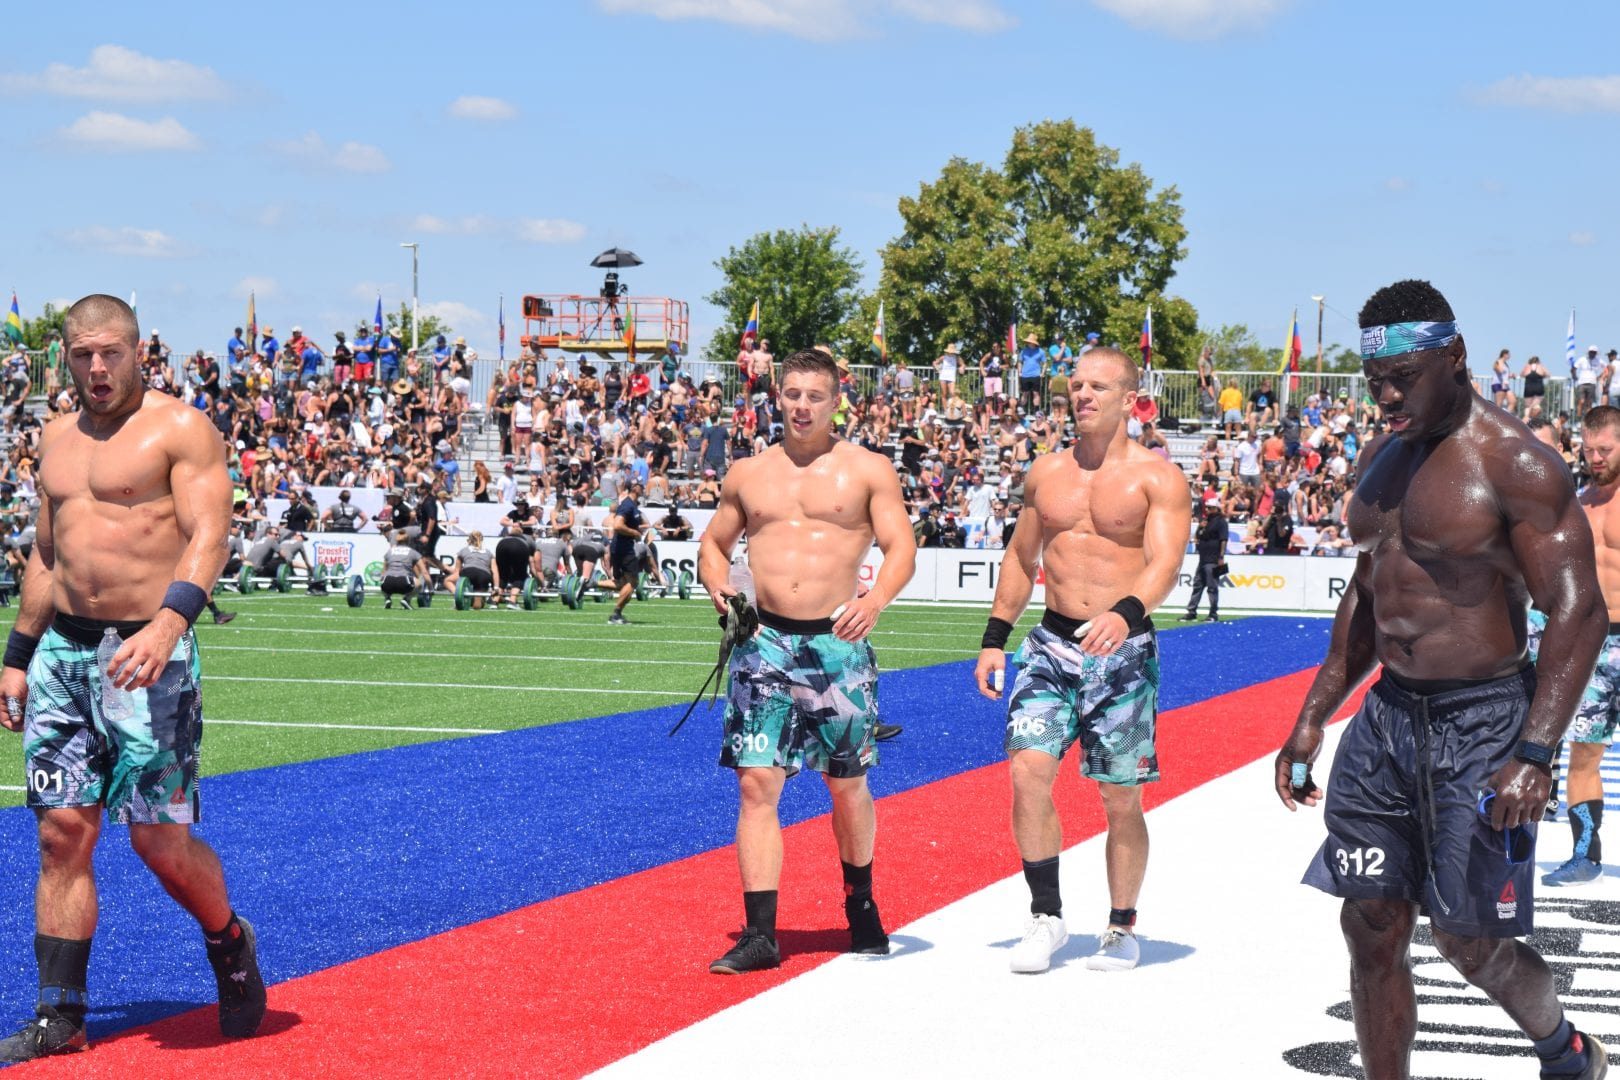 Jacob Heppner and Scott Panchik walk off the field after completing an event at the 2019 CrossFit Games.